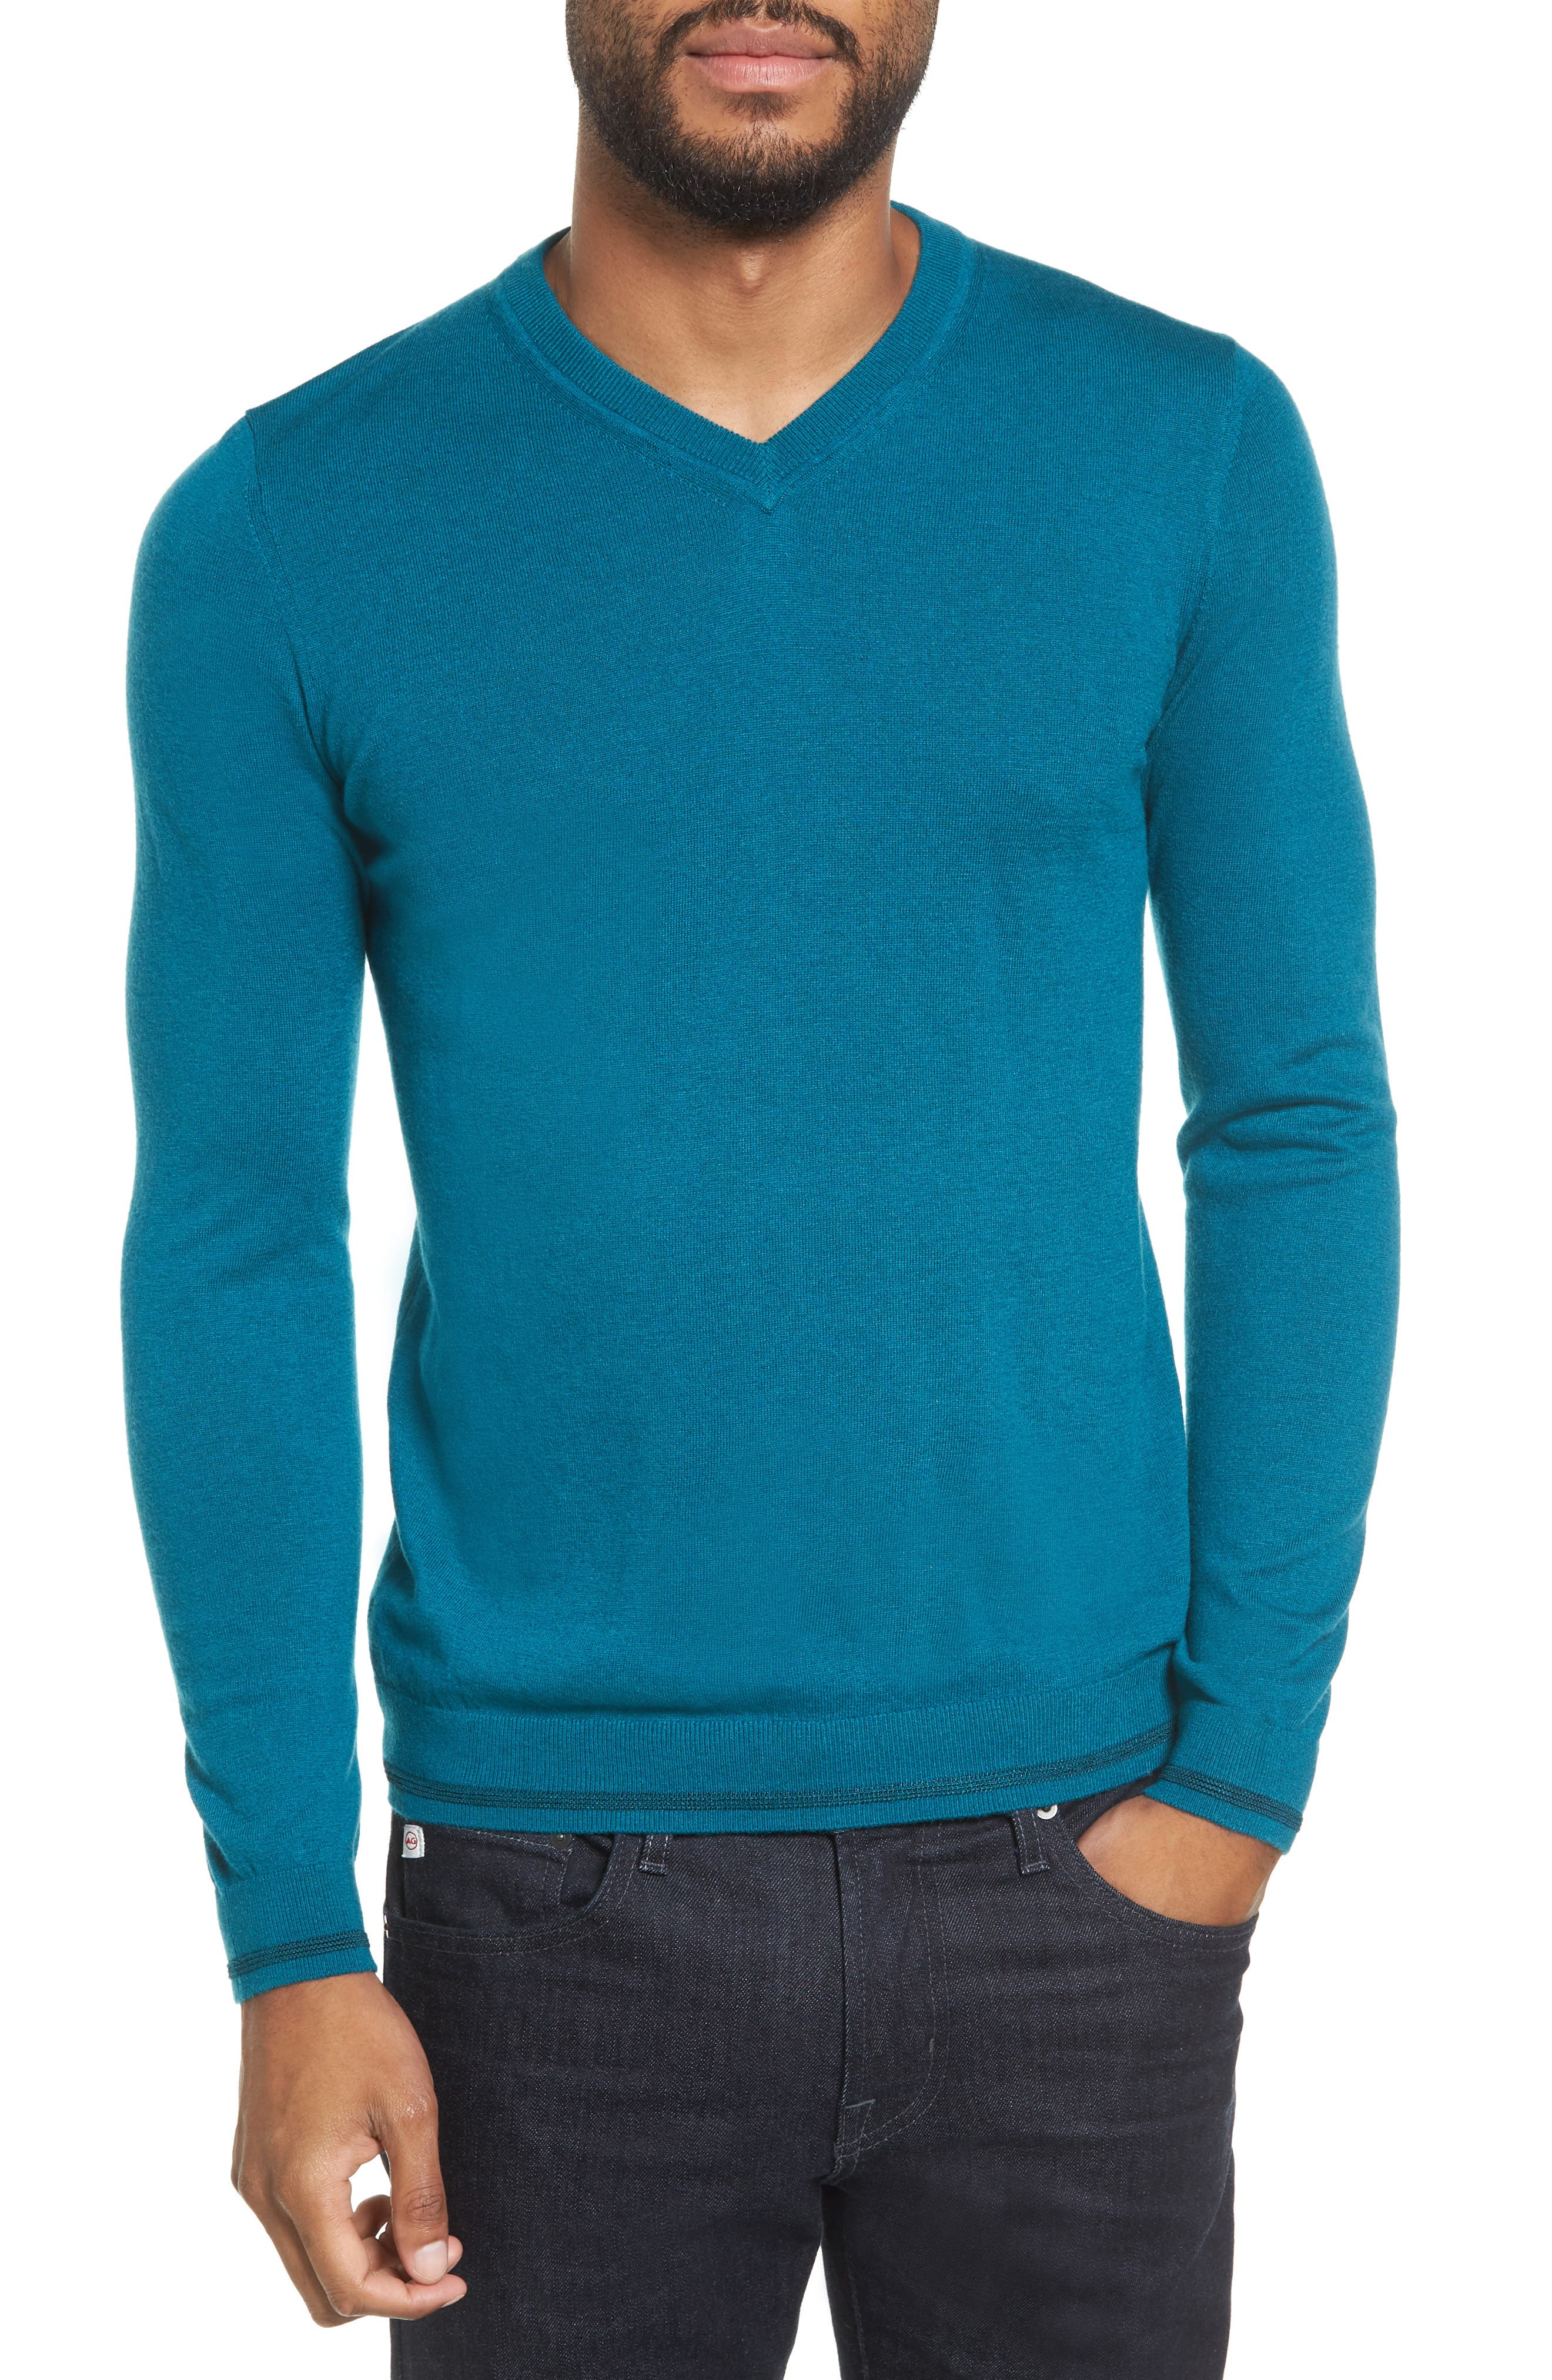 Alternate Image 1 Selected - Ted Baker London V-Neck Sweater